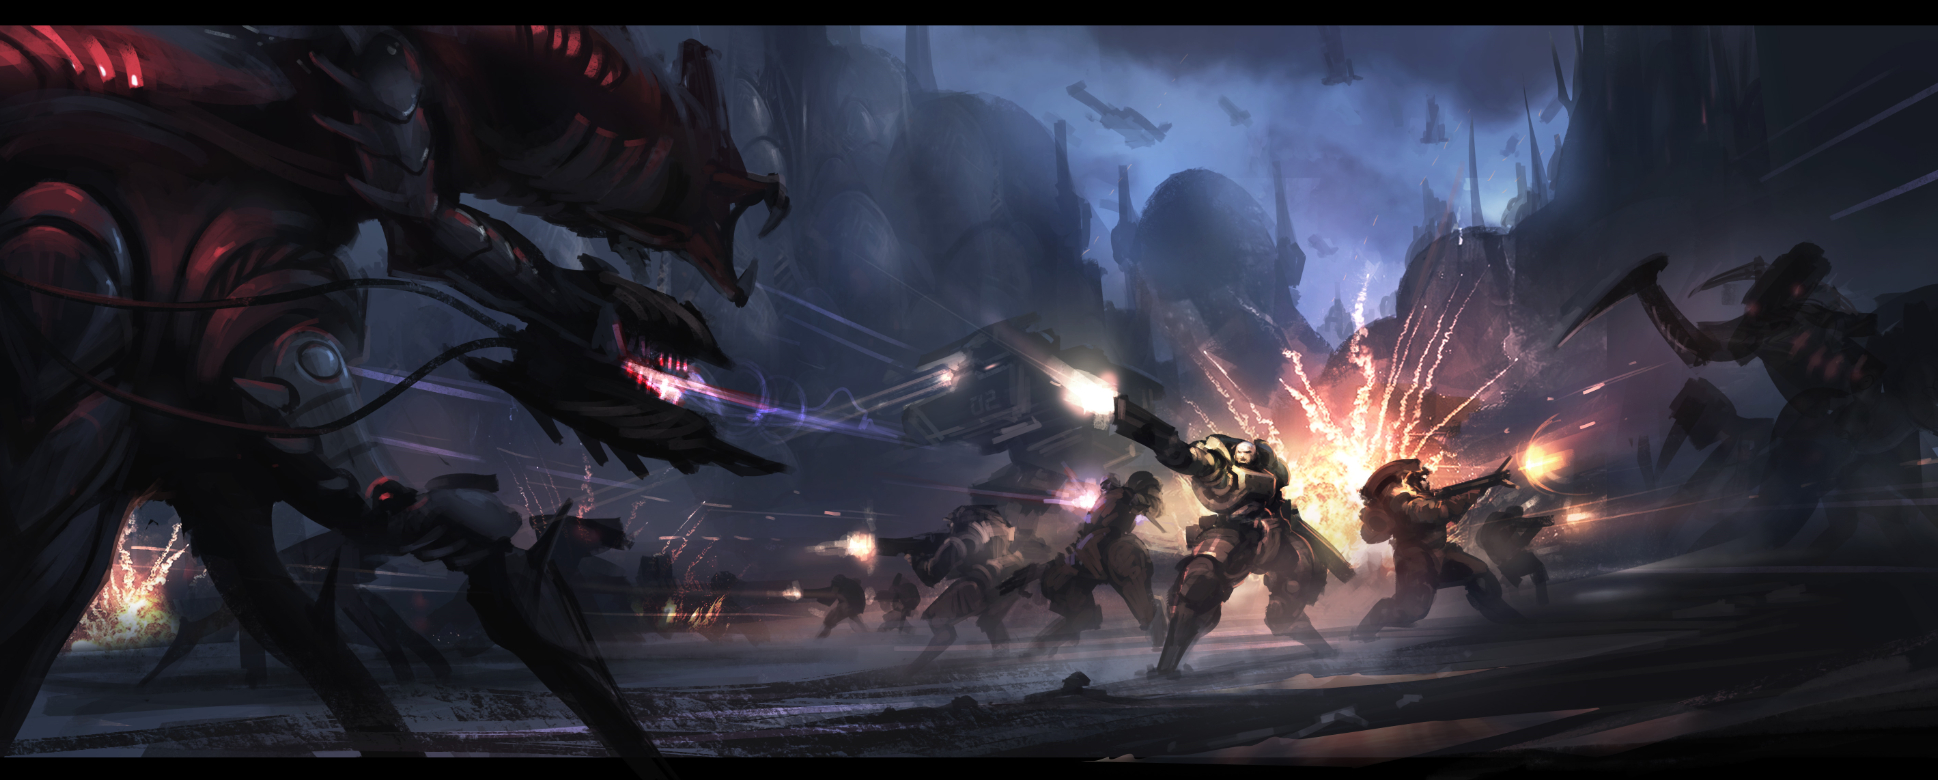 starship troopers by progv on deviantart